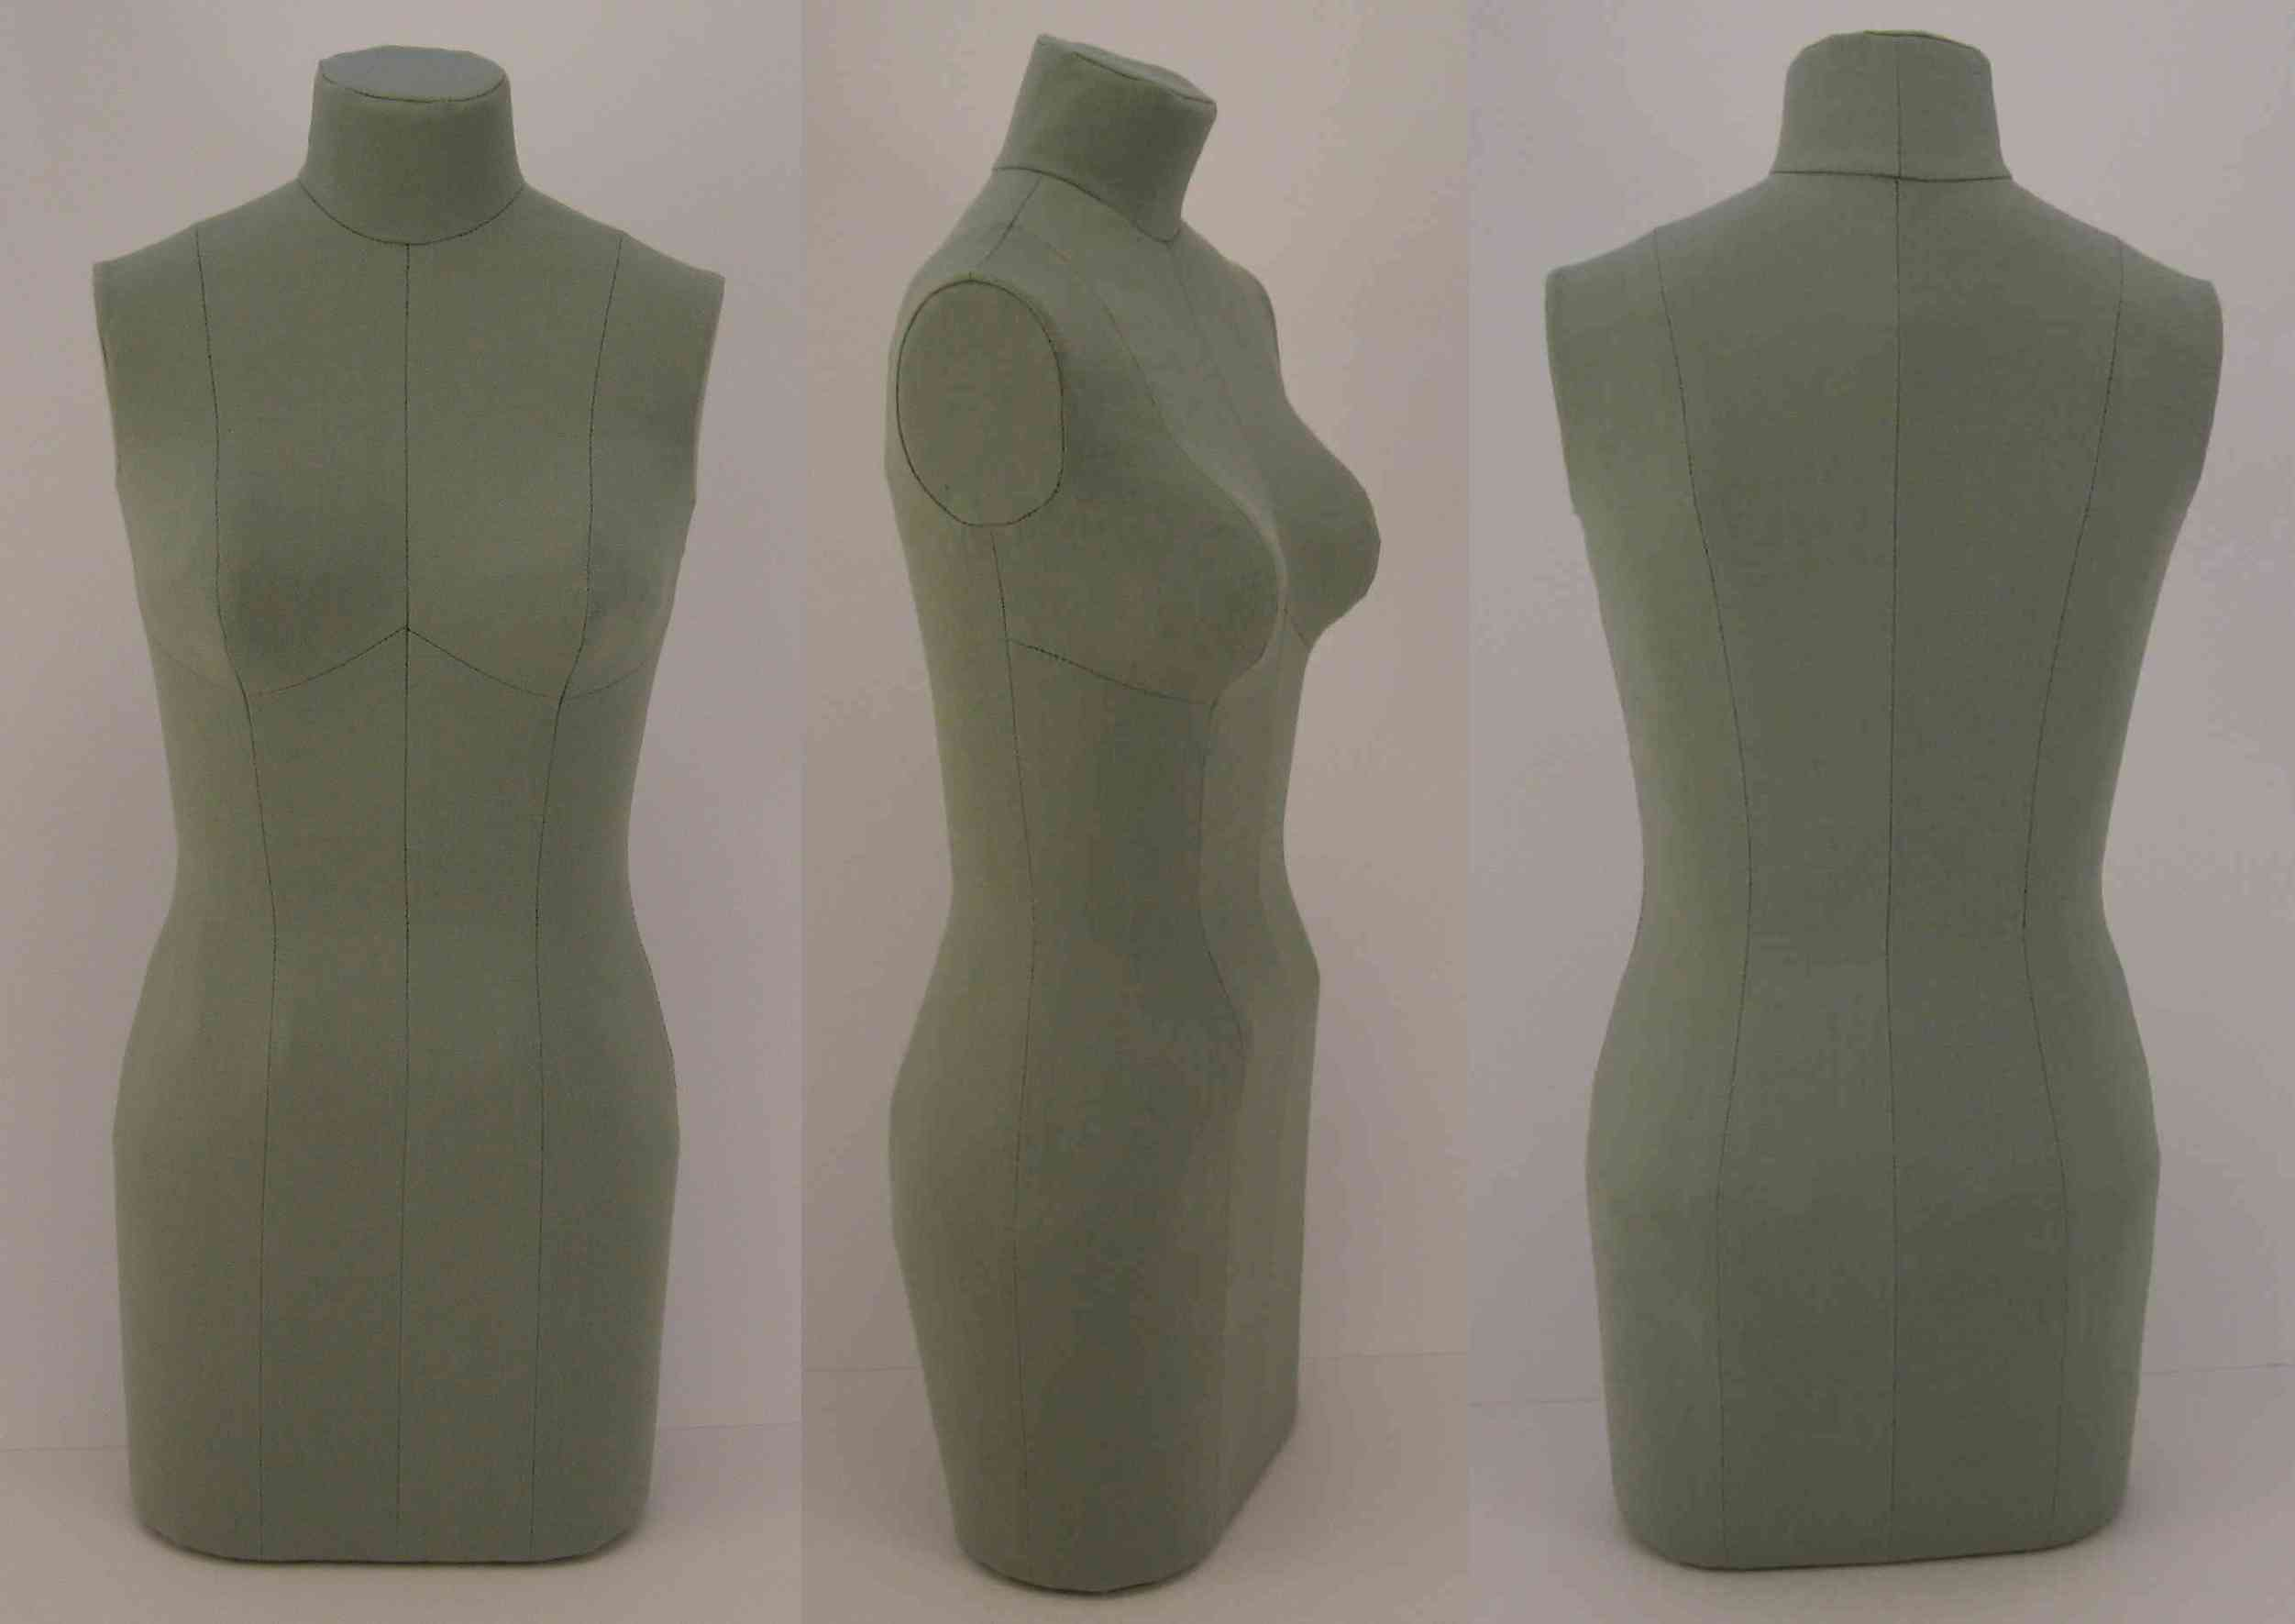 Another Half Scale Dress Form Grow Your Own Clothes